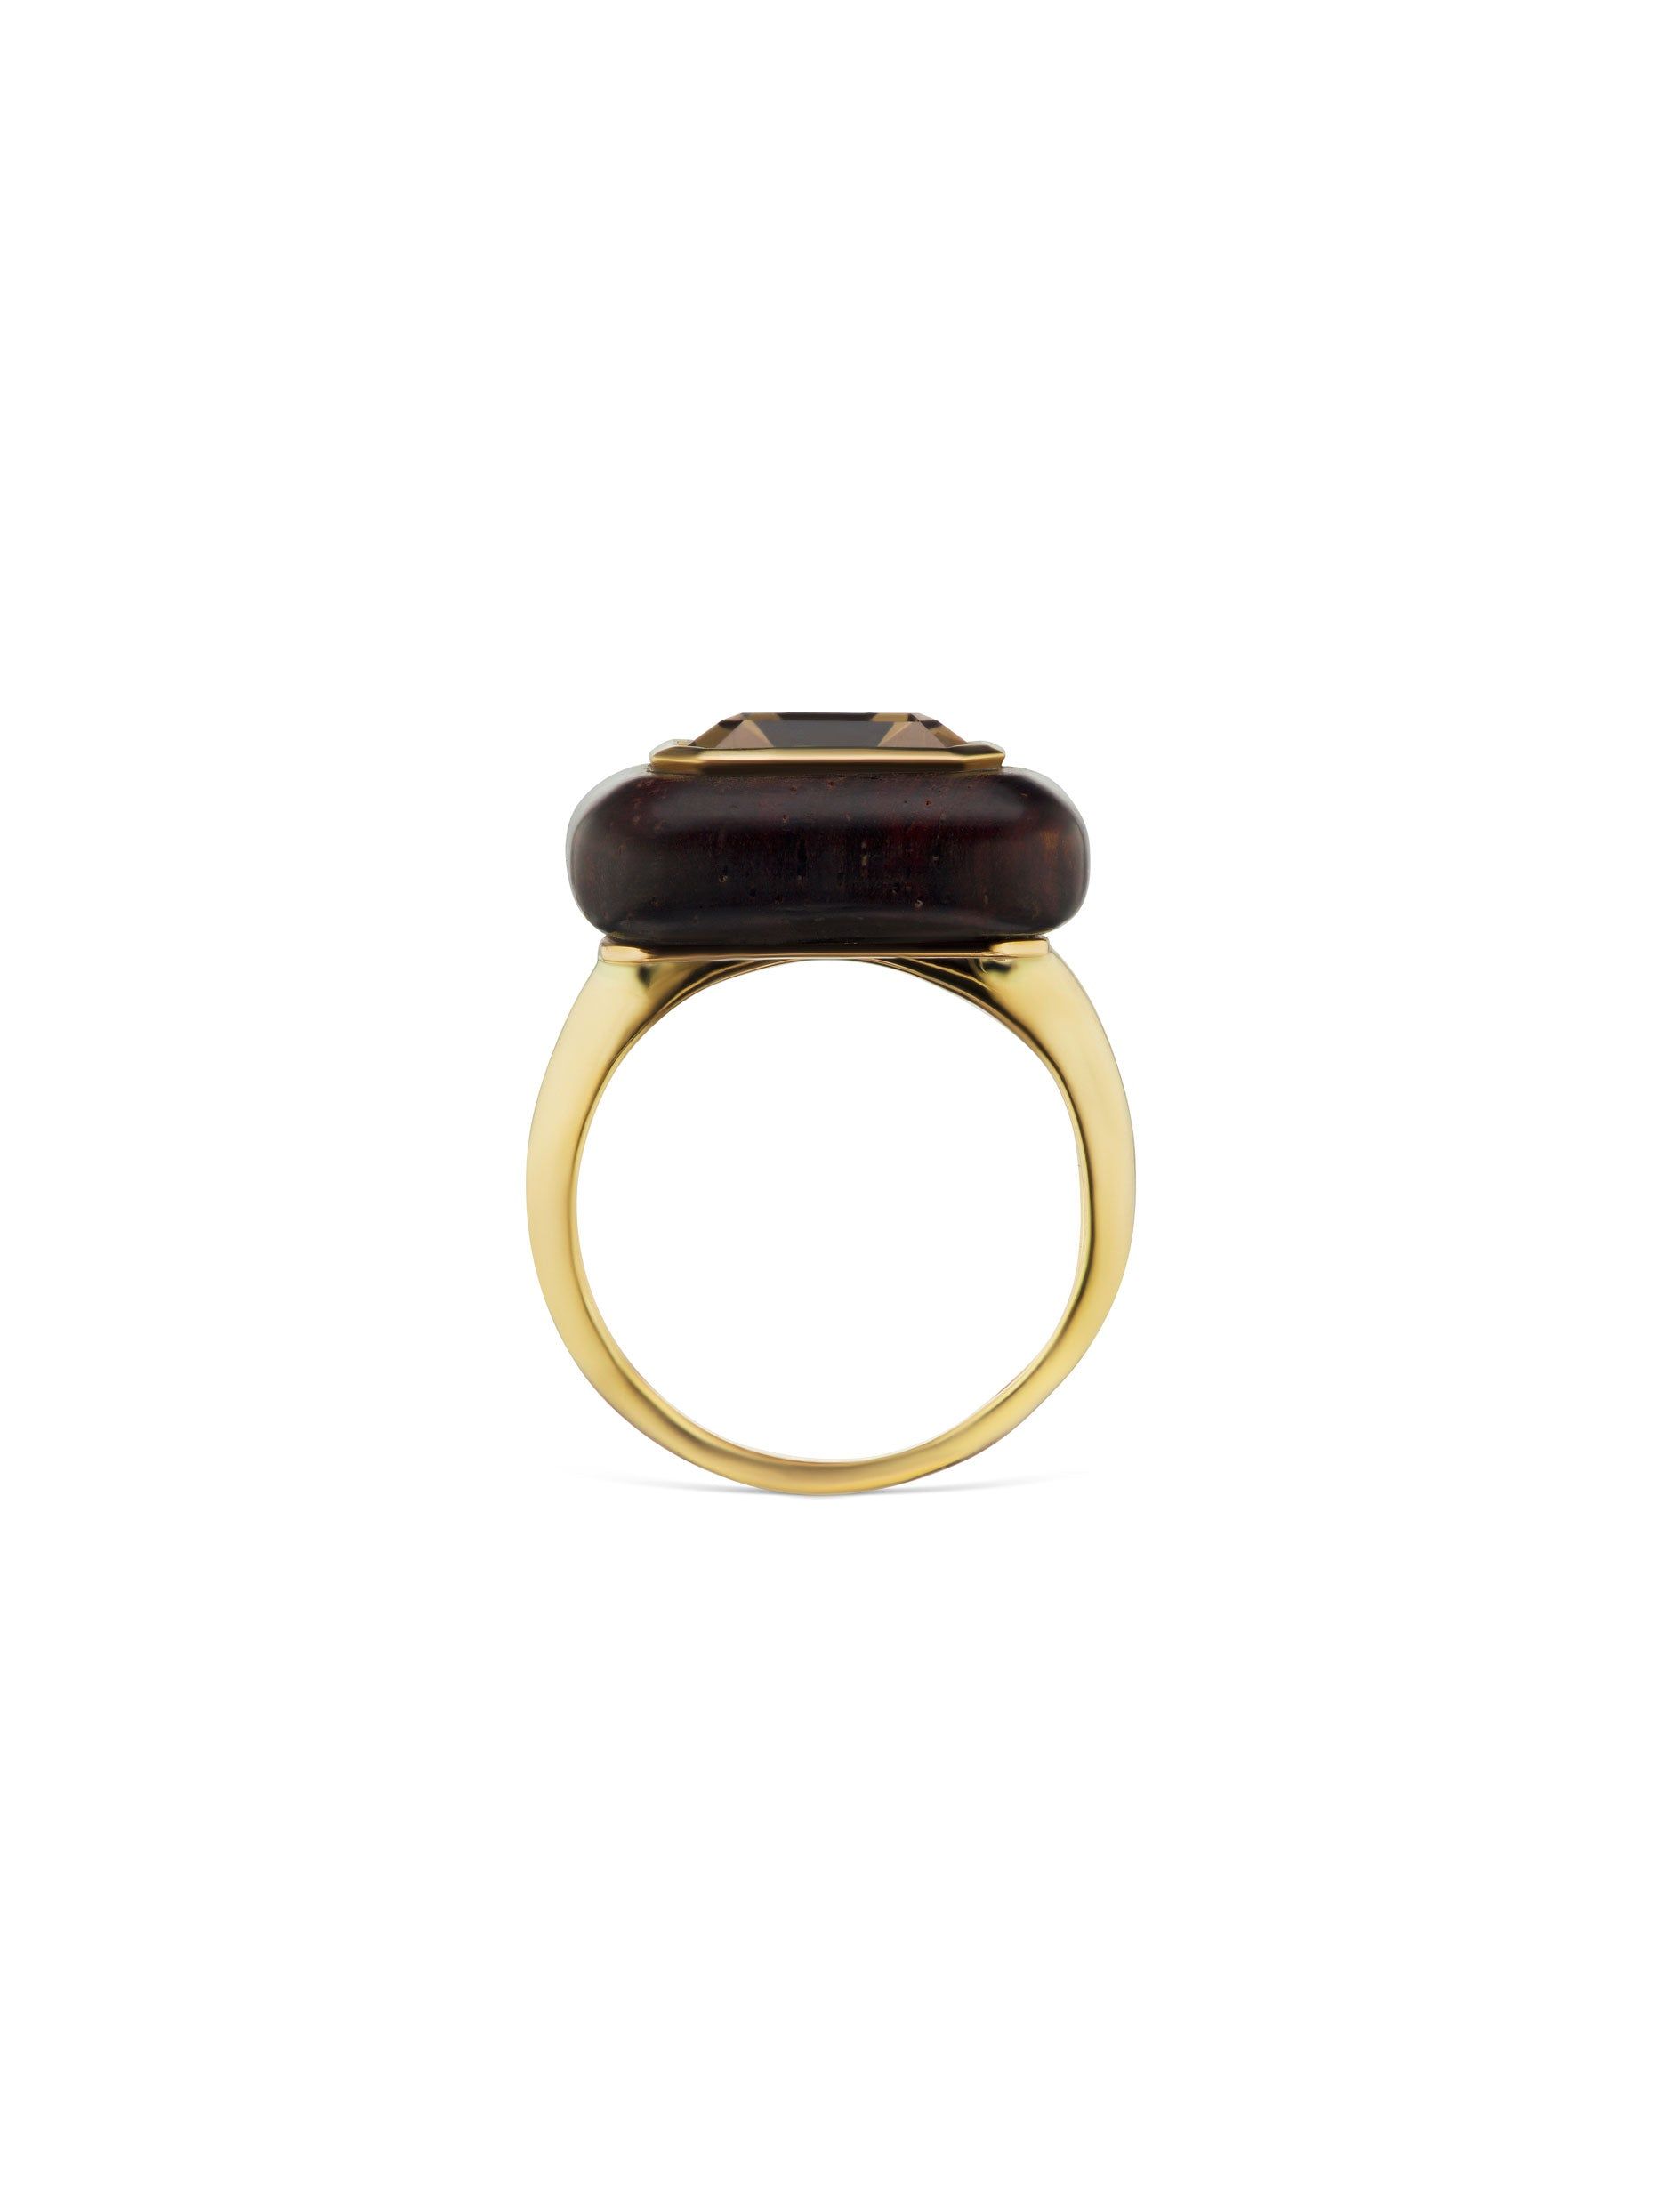 Voyager North-South Emerald Cut Smokey Topaz Wood Ring